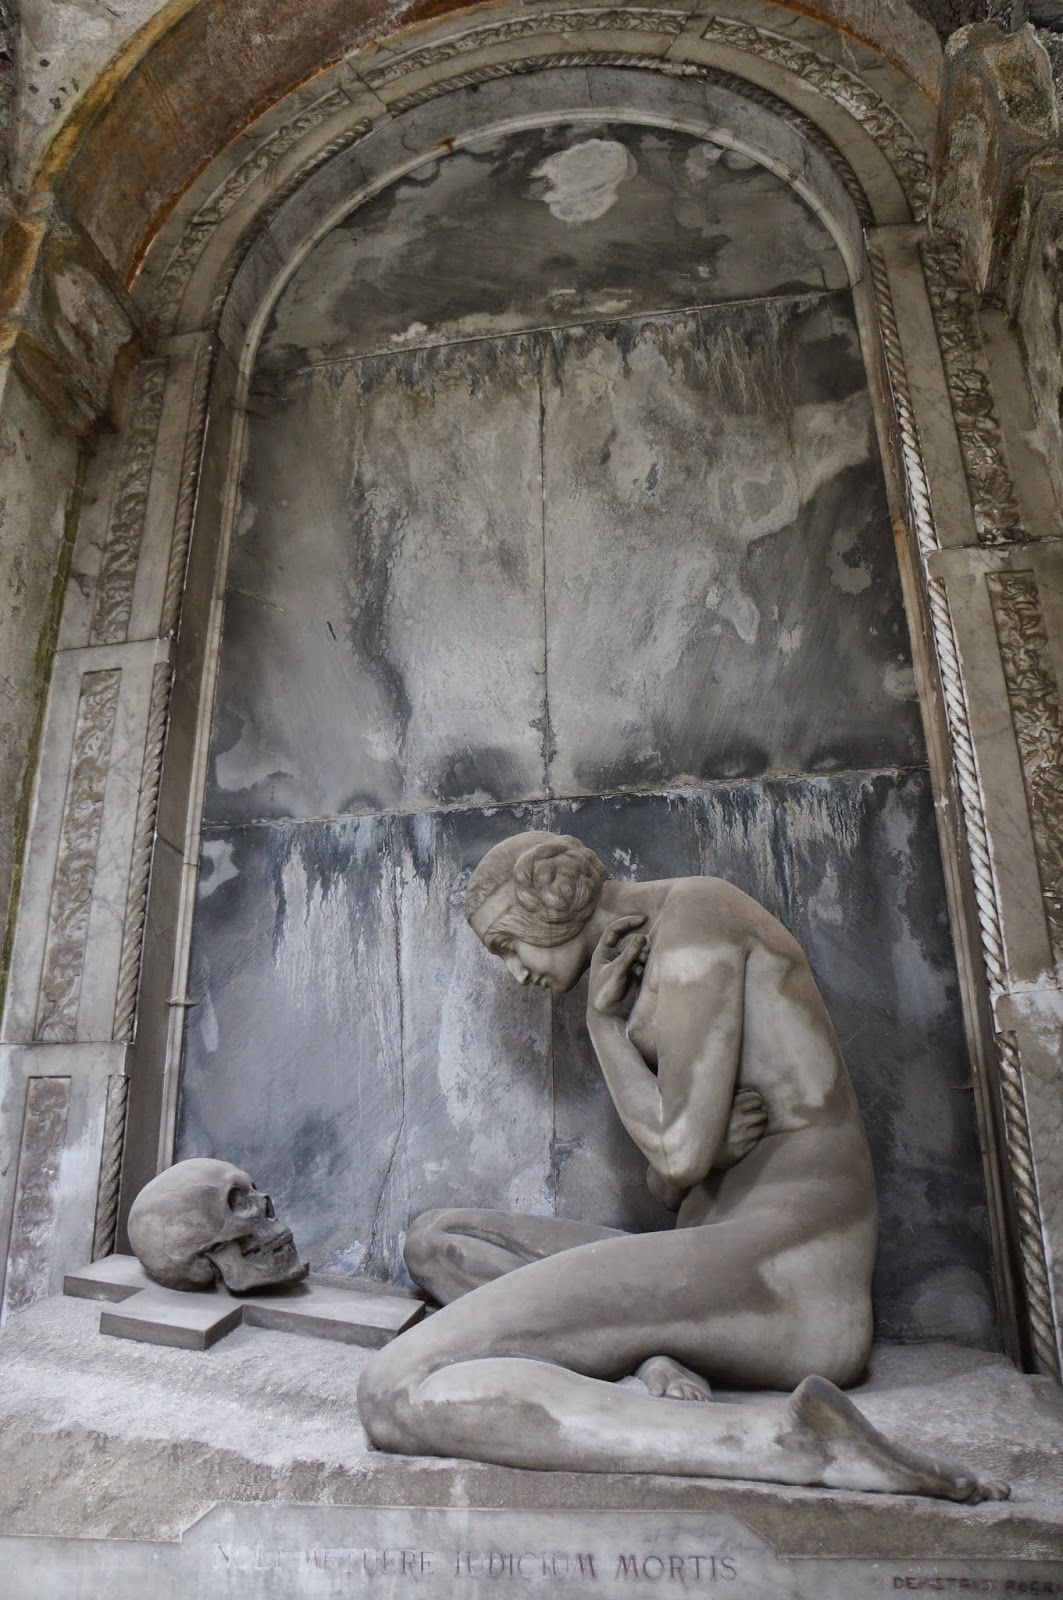 Beautiful stone statuary in the Staglieno Cemetery in Genoa Italy - lady with skull and cross